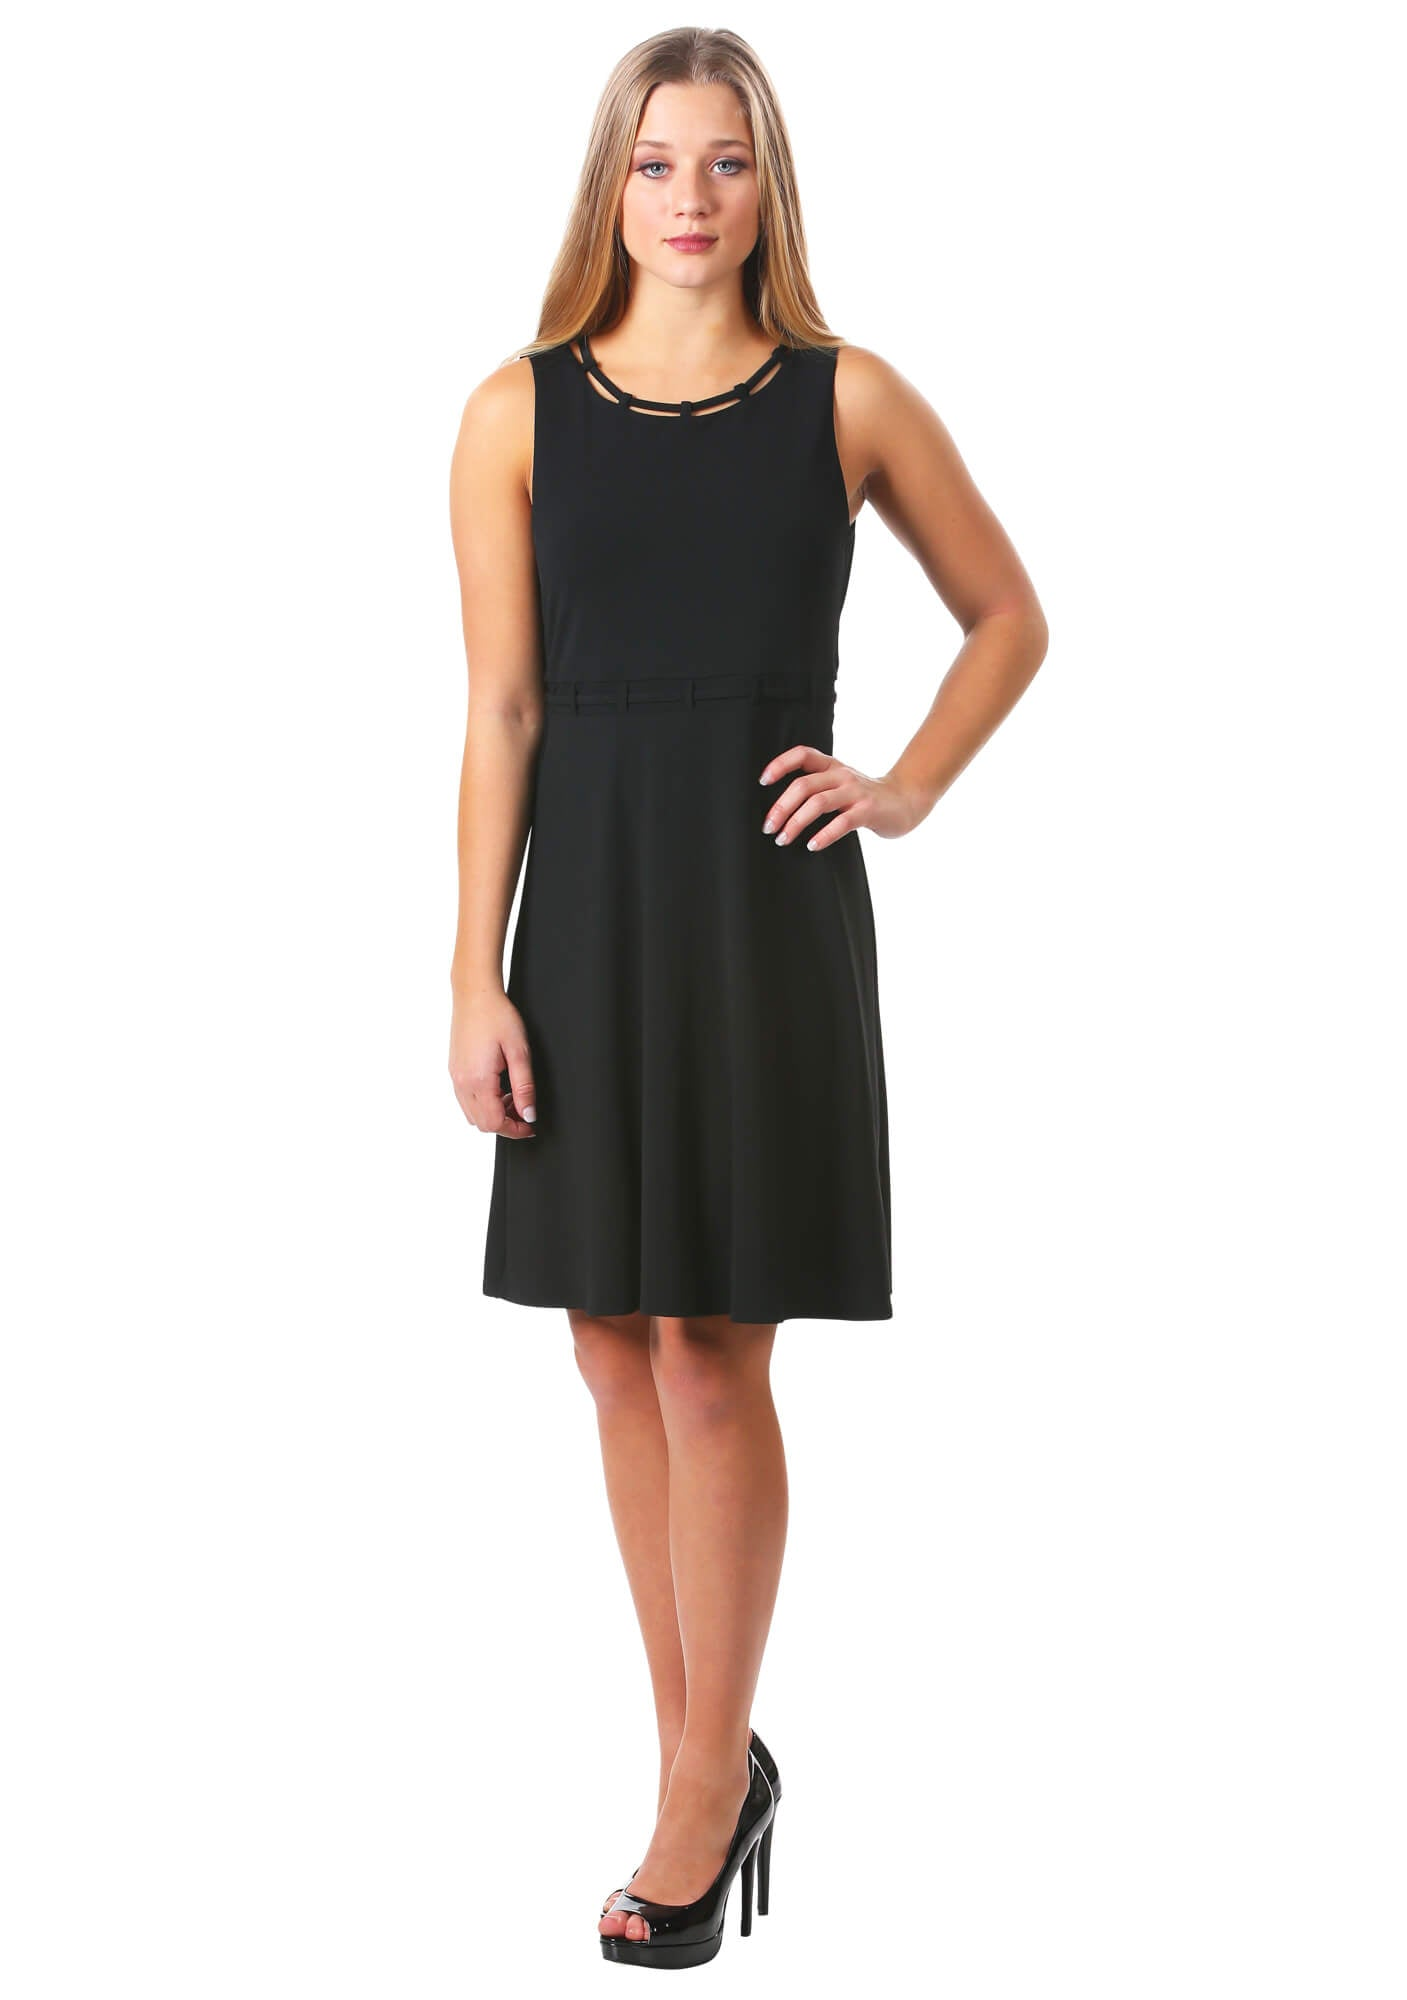 Looped Trim Fit and Flare Dress in Black